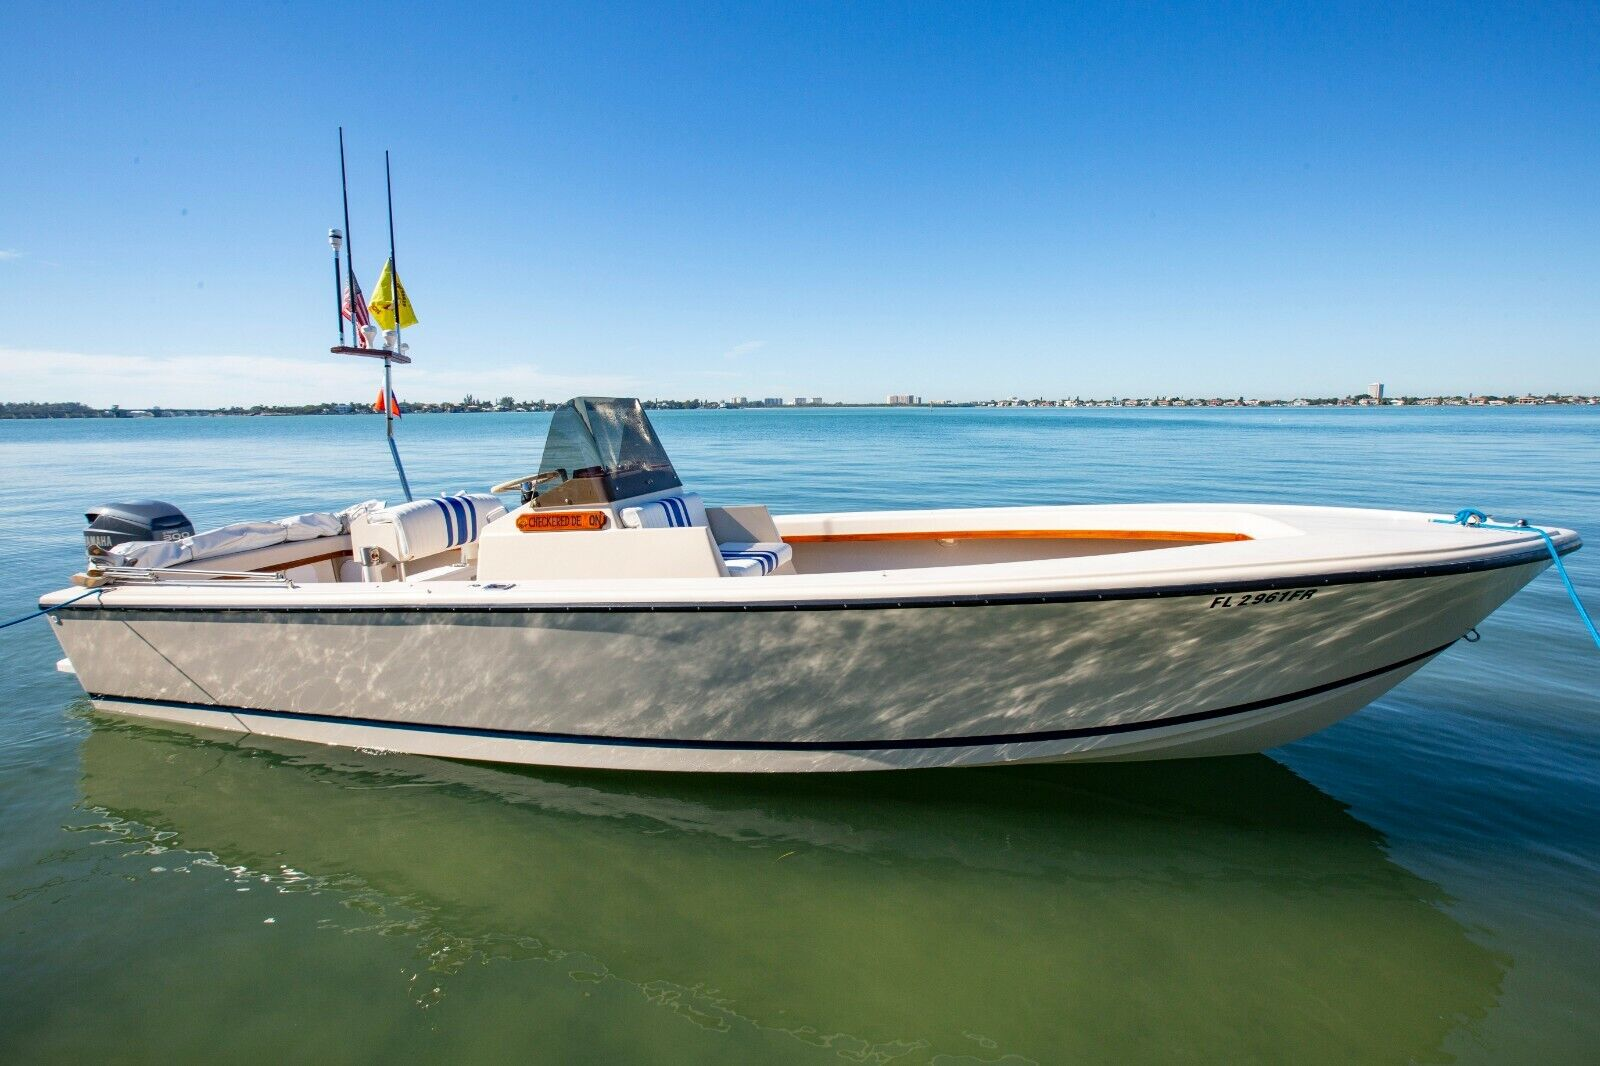 1986 Intrepid 26' - First Ever Sold in MINT Condition! Great Christmas Present